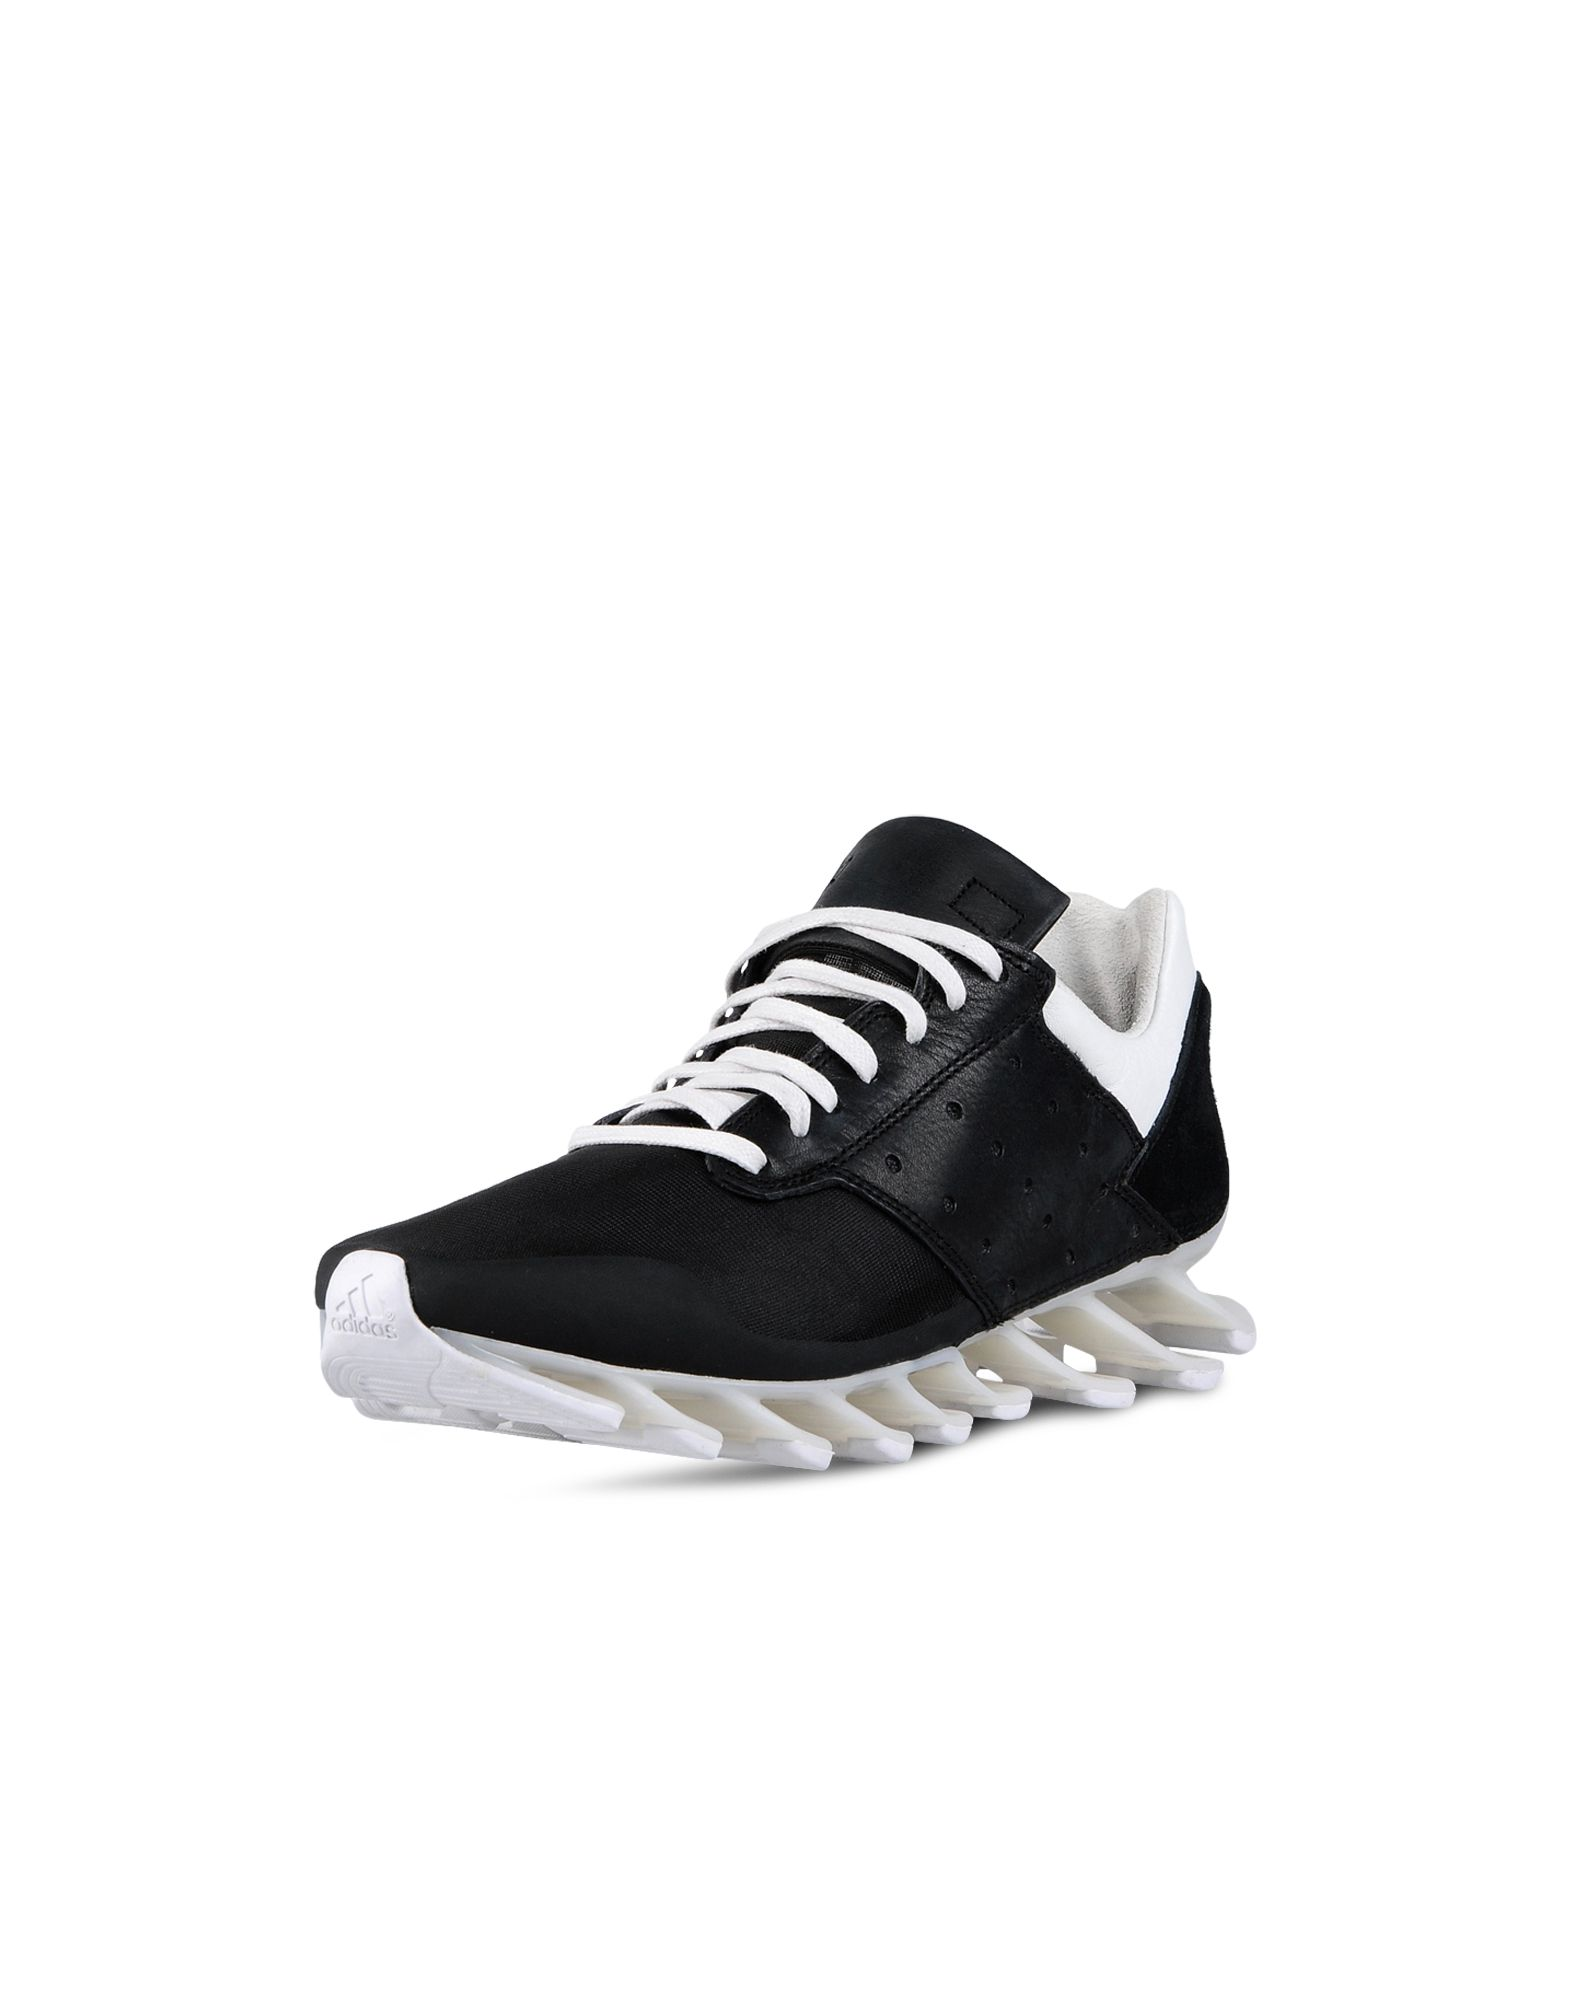 newest a3c2a e7dad Rick Owens Springblade Trainers | Adidas Y-3 Official Site